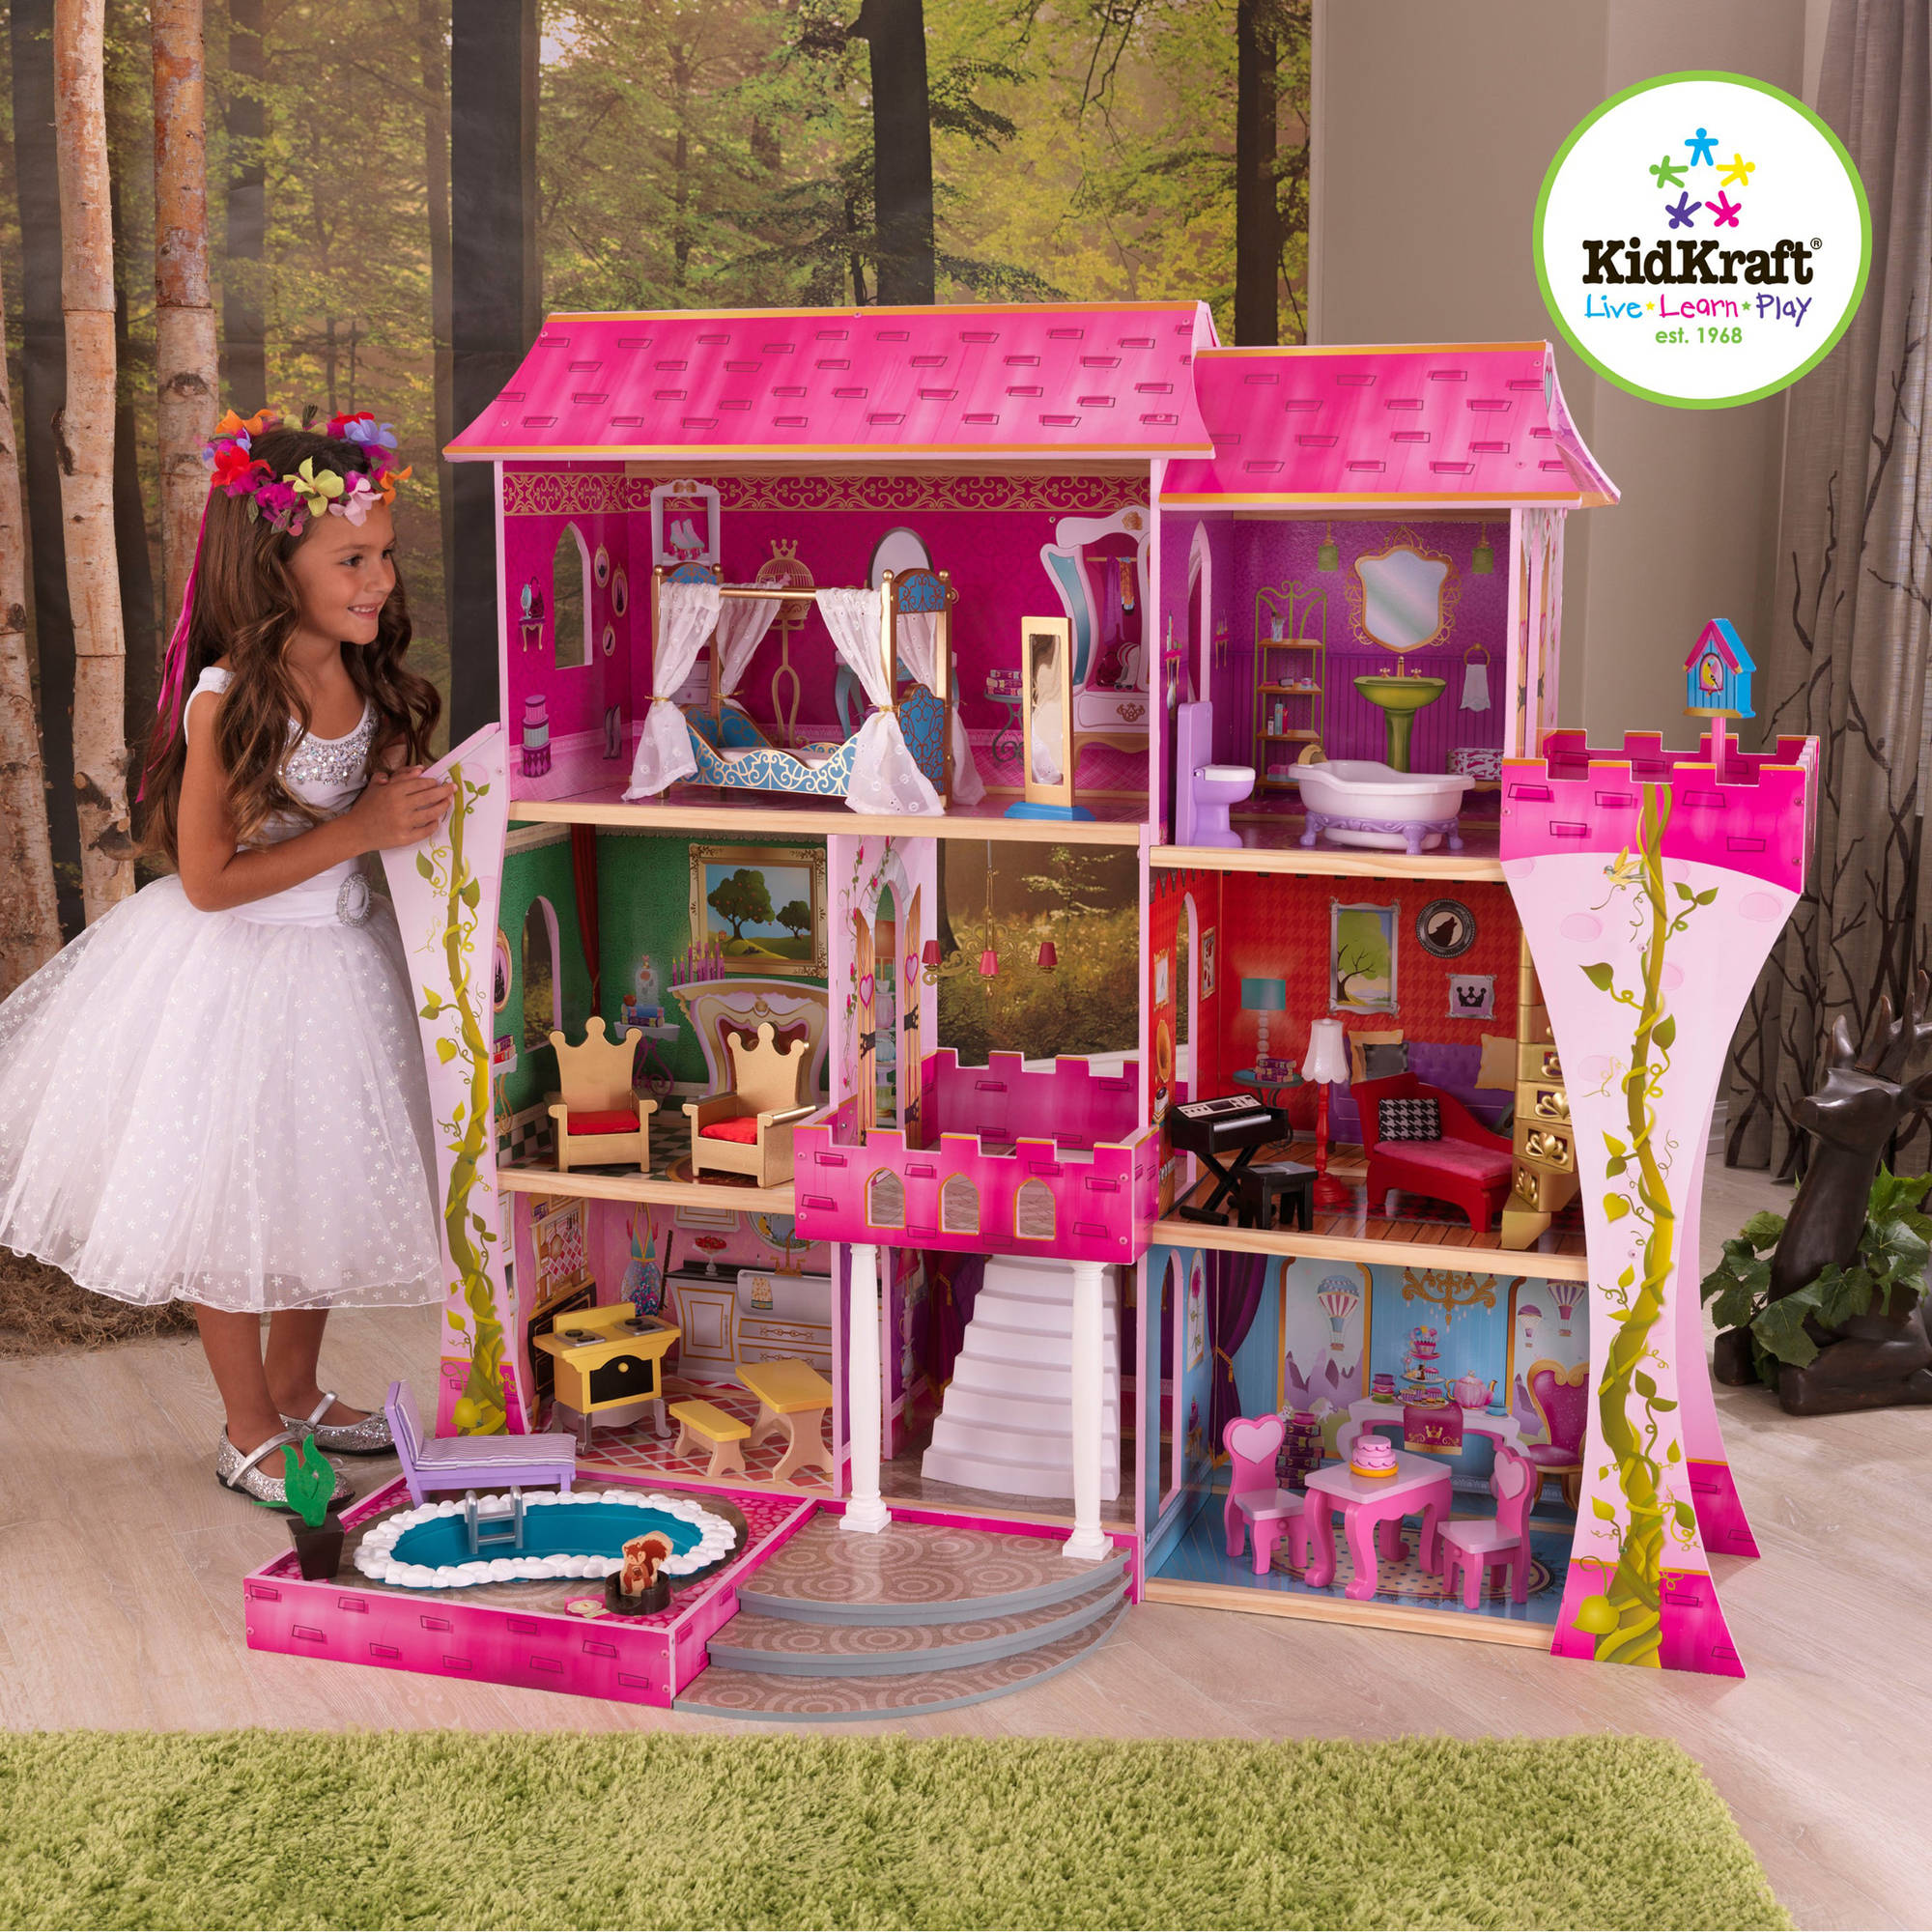 Kids craft doll house - Kidkraft Penelope Soft Pastel Wooden Play Dollhouse With Furniture Doll Family Walmart Com